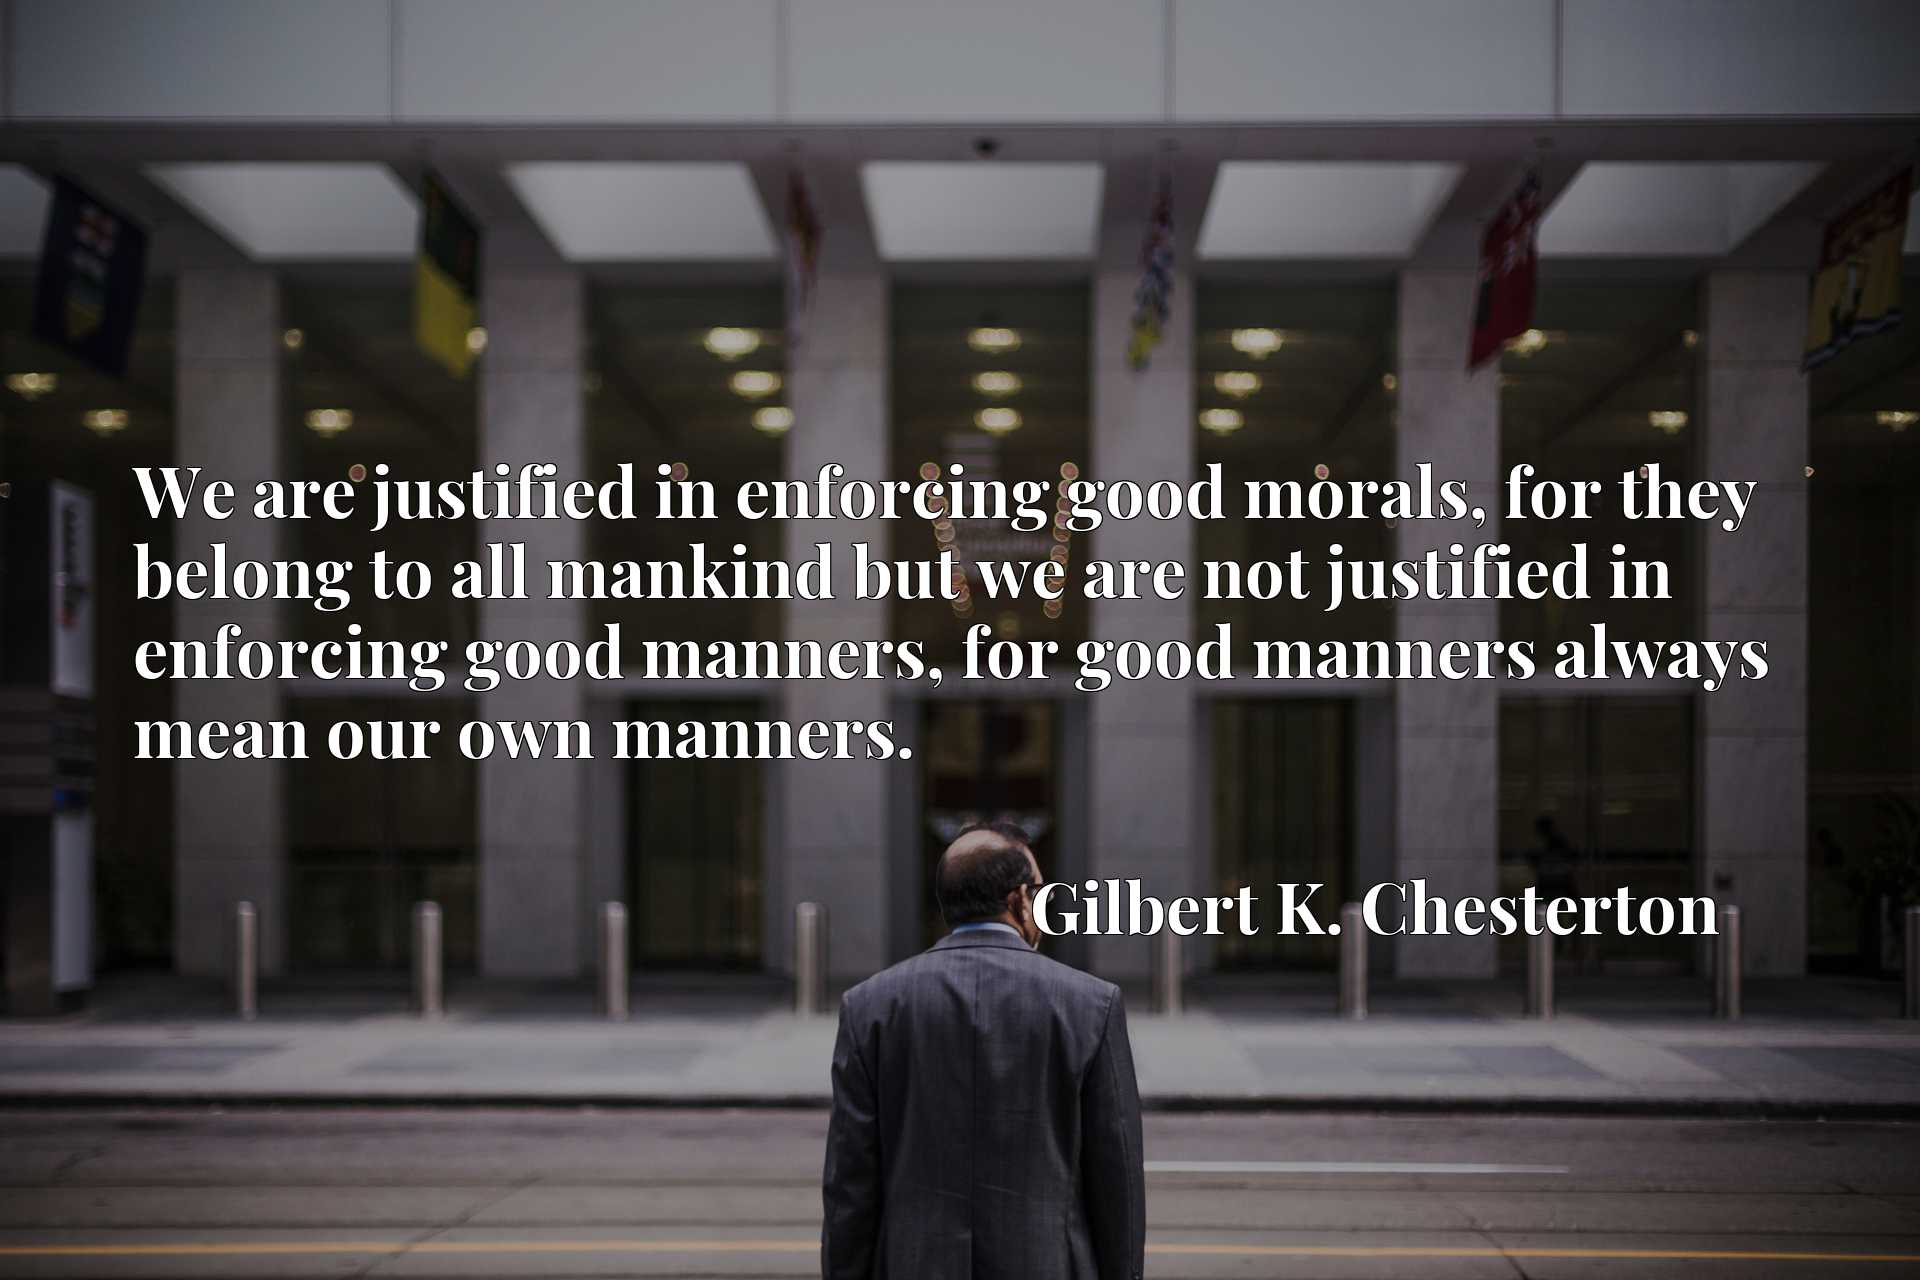 We are justified in enforcing good morals, for they belong to all mankind but we are not justified in enforcing good manners, for good manners always mean our own manners.